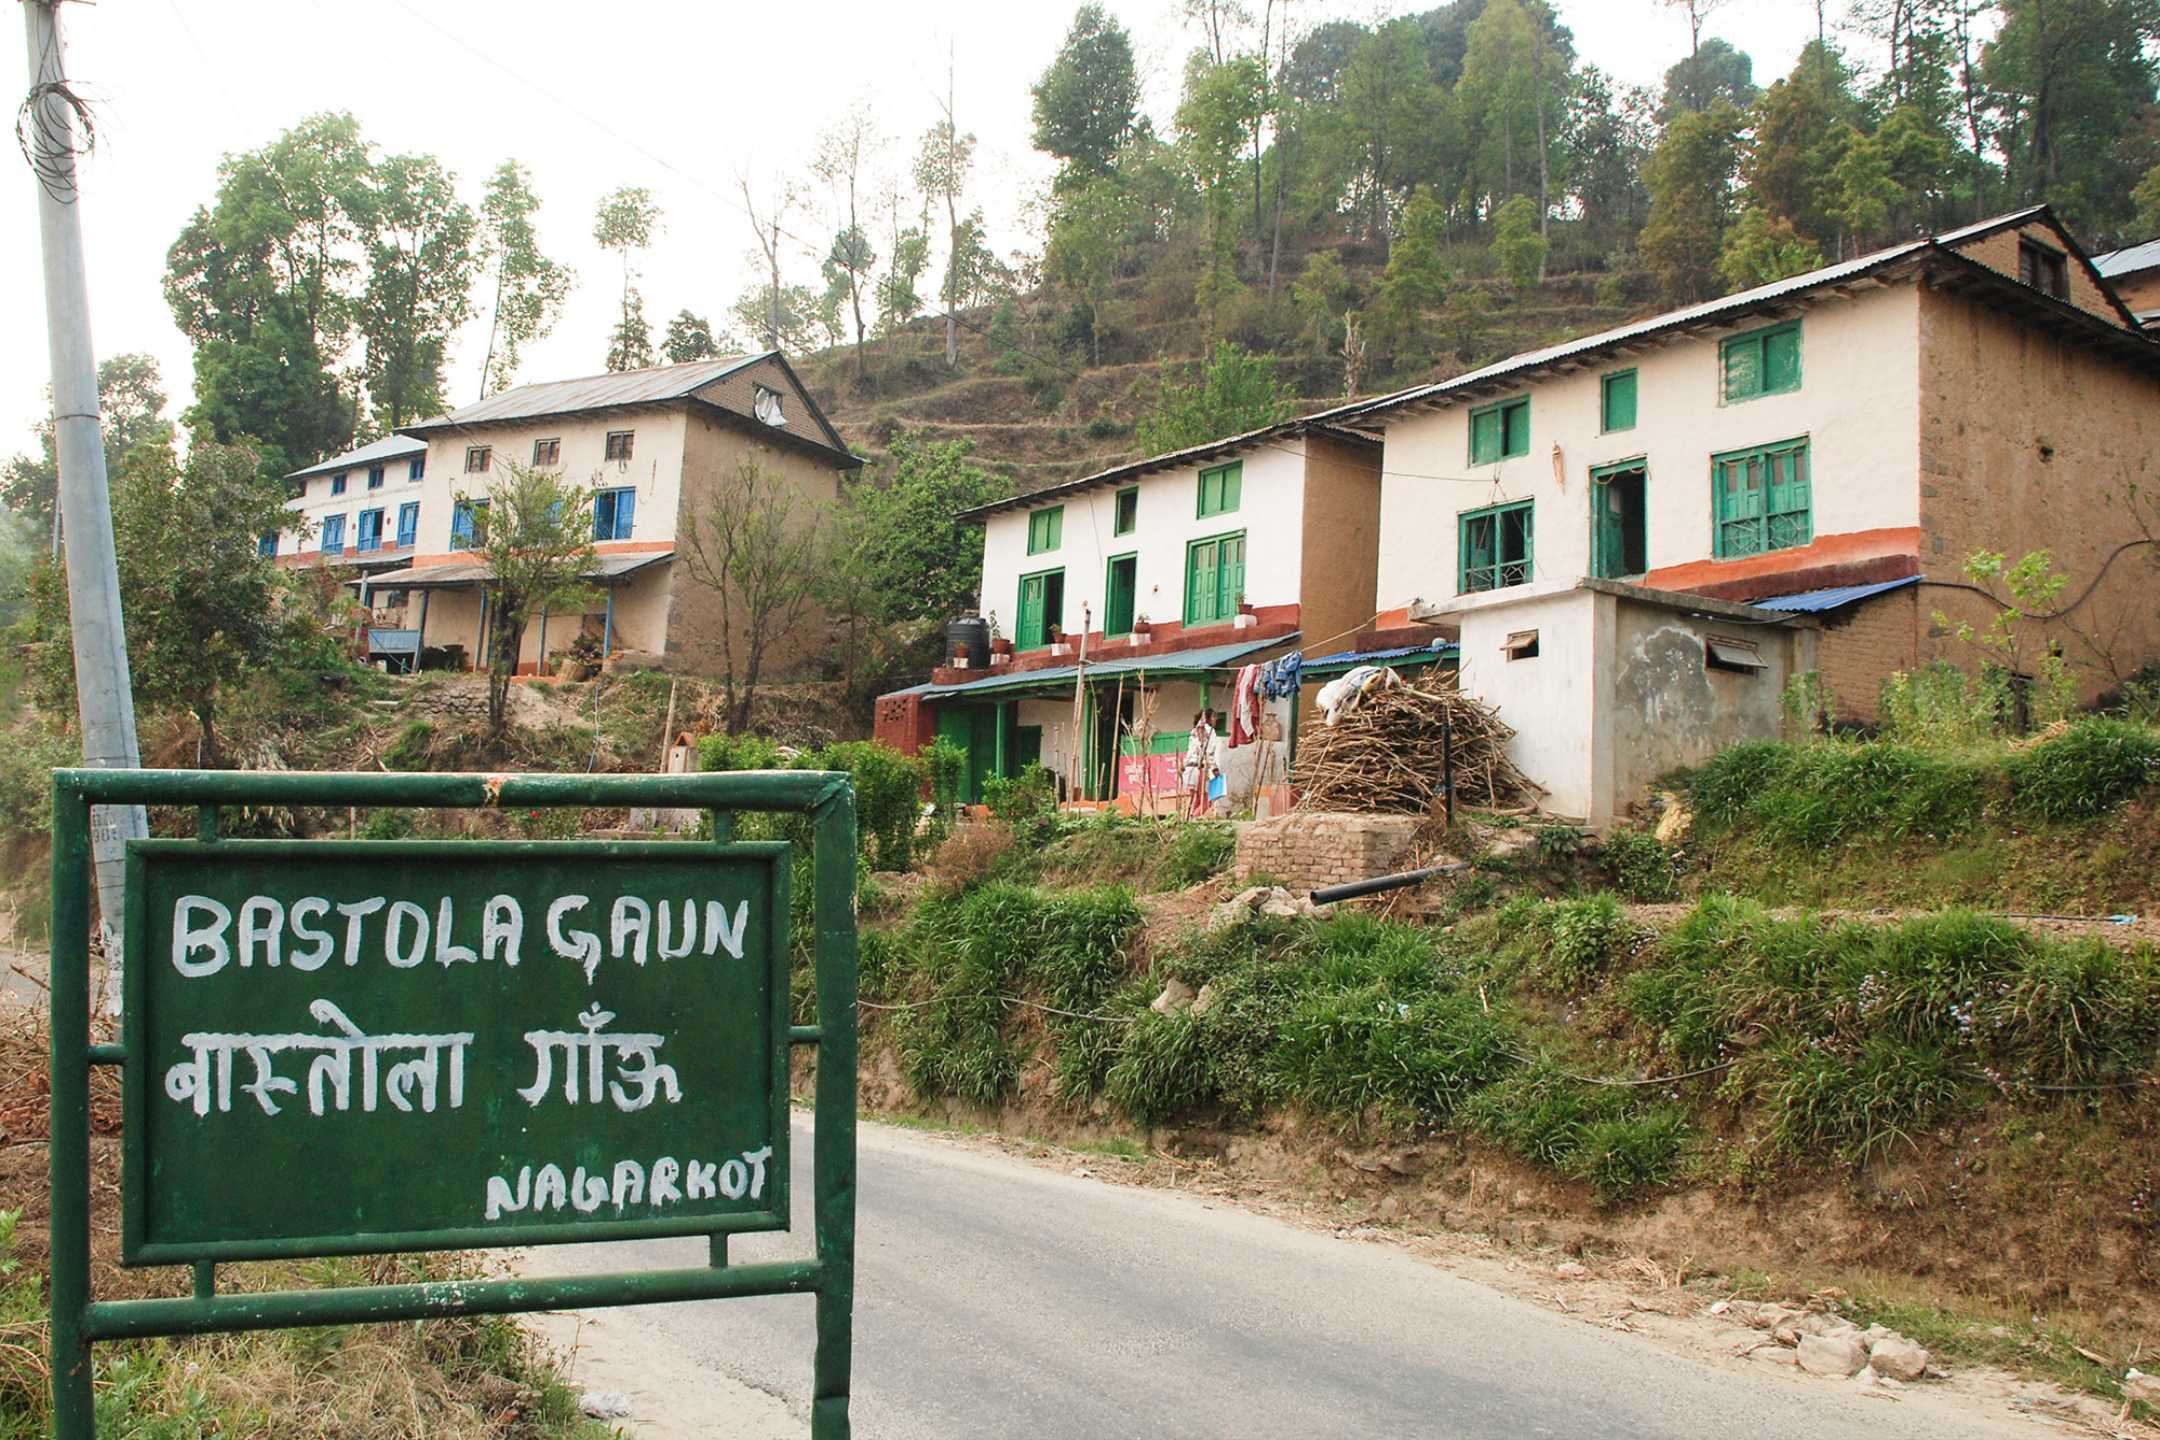 Bastola Village, Home to Nagarkot Community Homestay